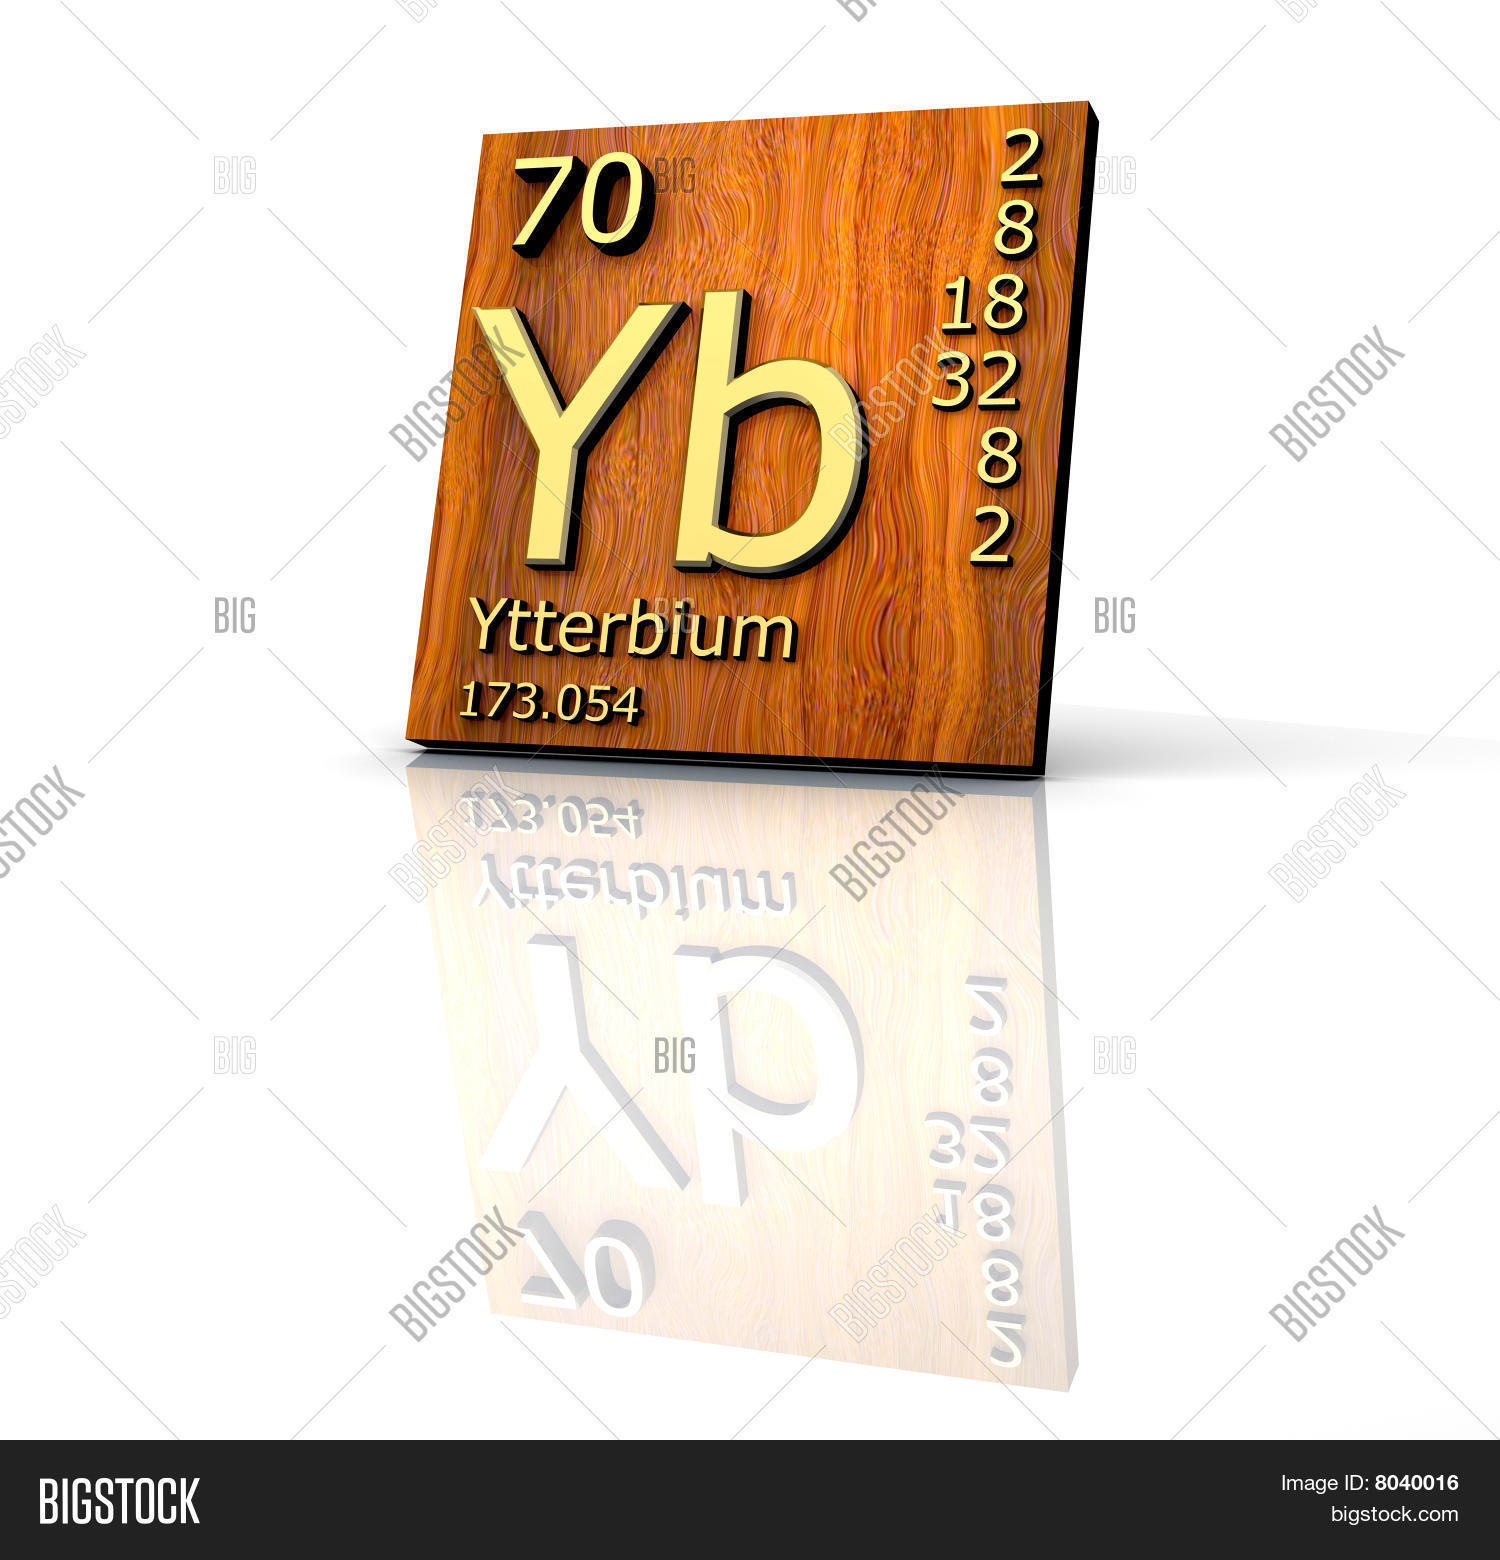 Ytterbium form image photo free trial bigstock ytterbium form periodic table of elements wood board urtaz Images